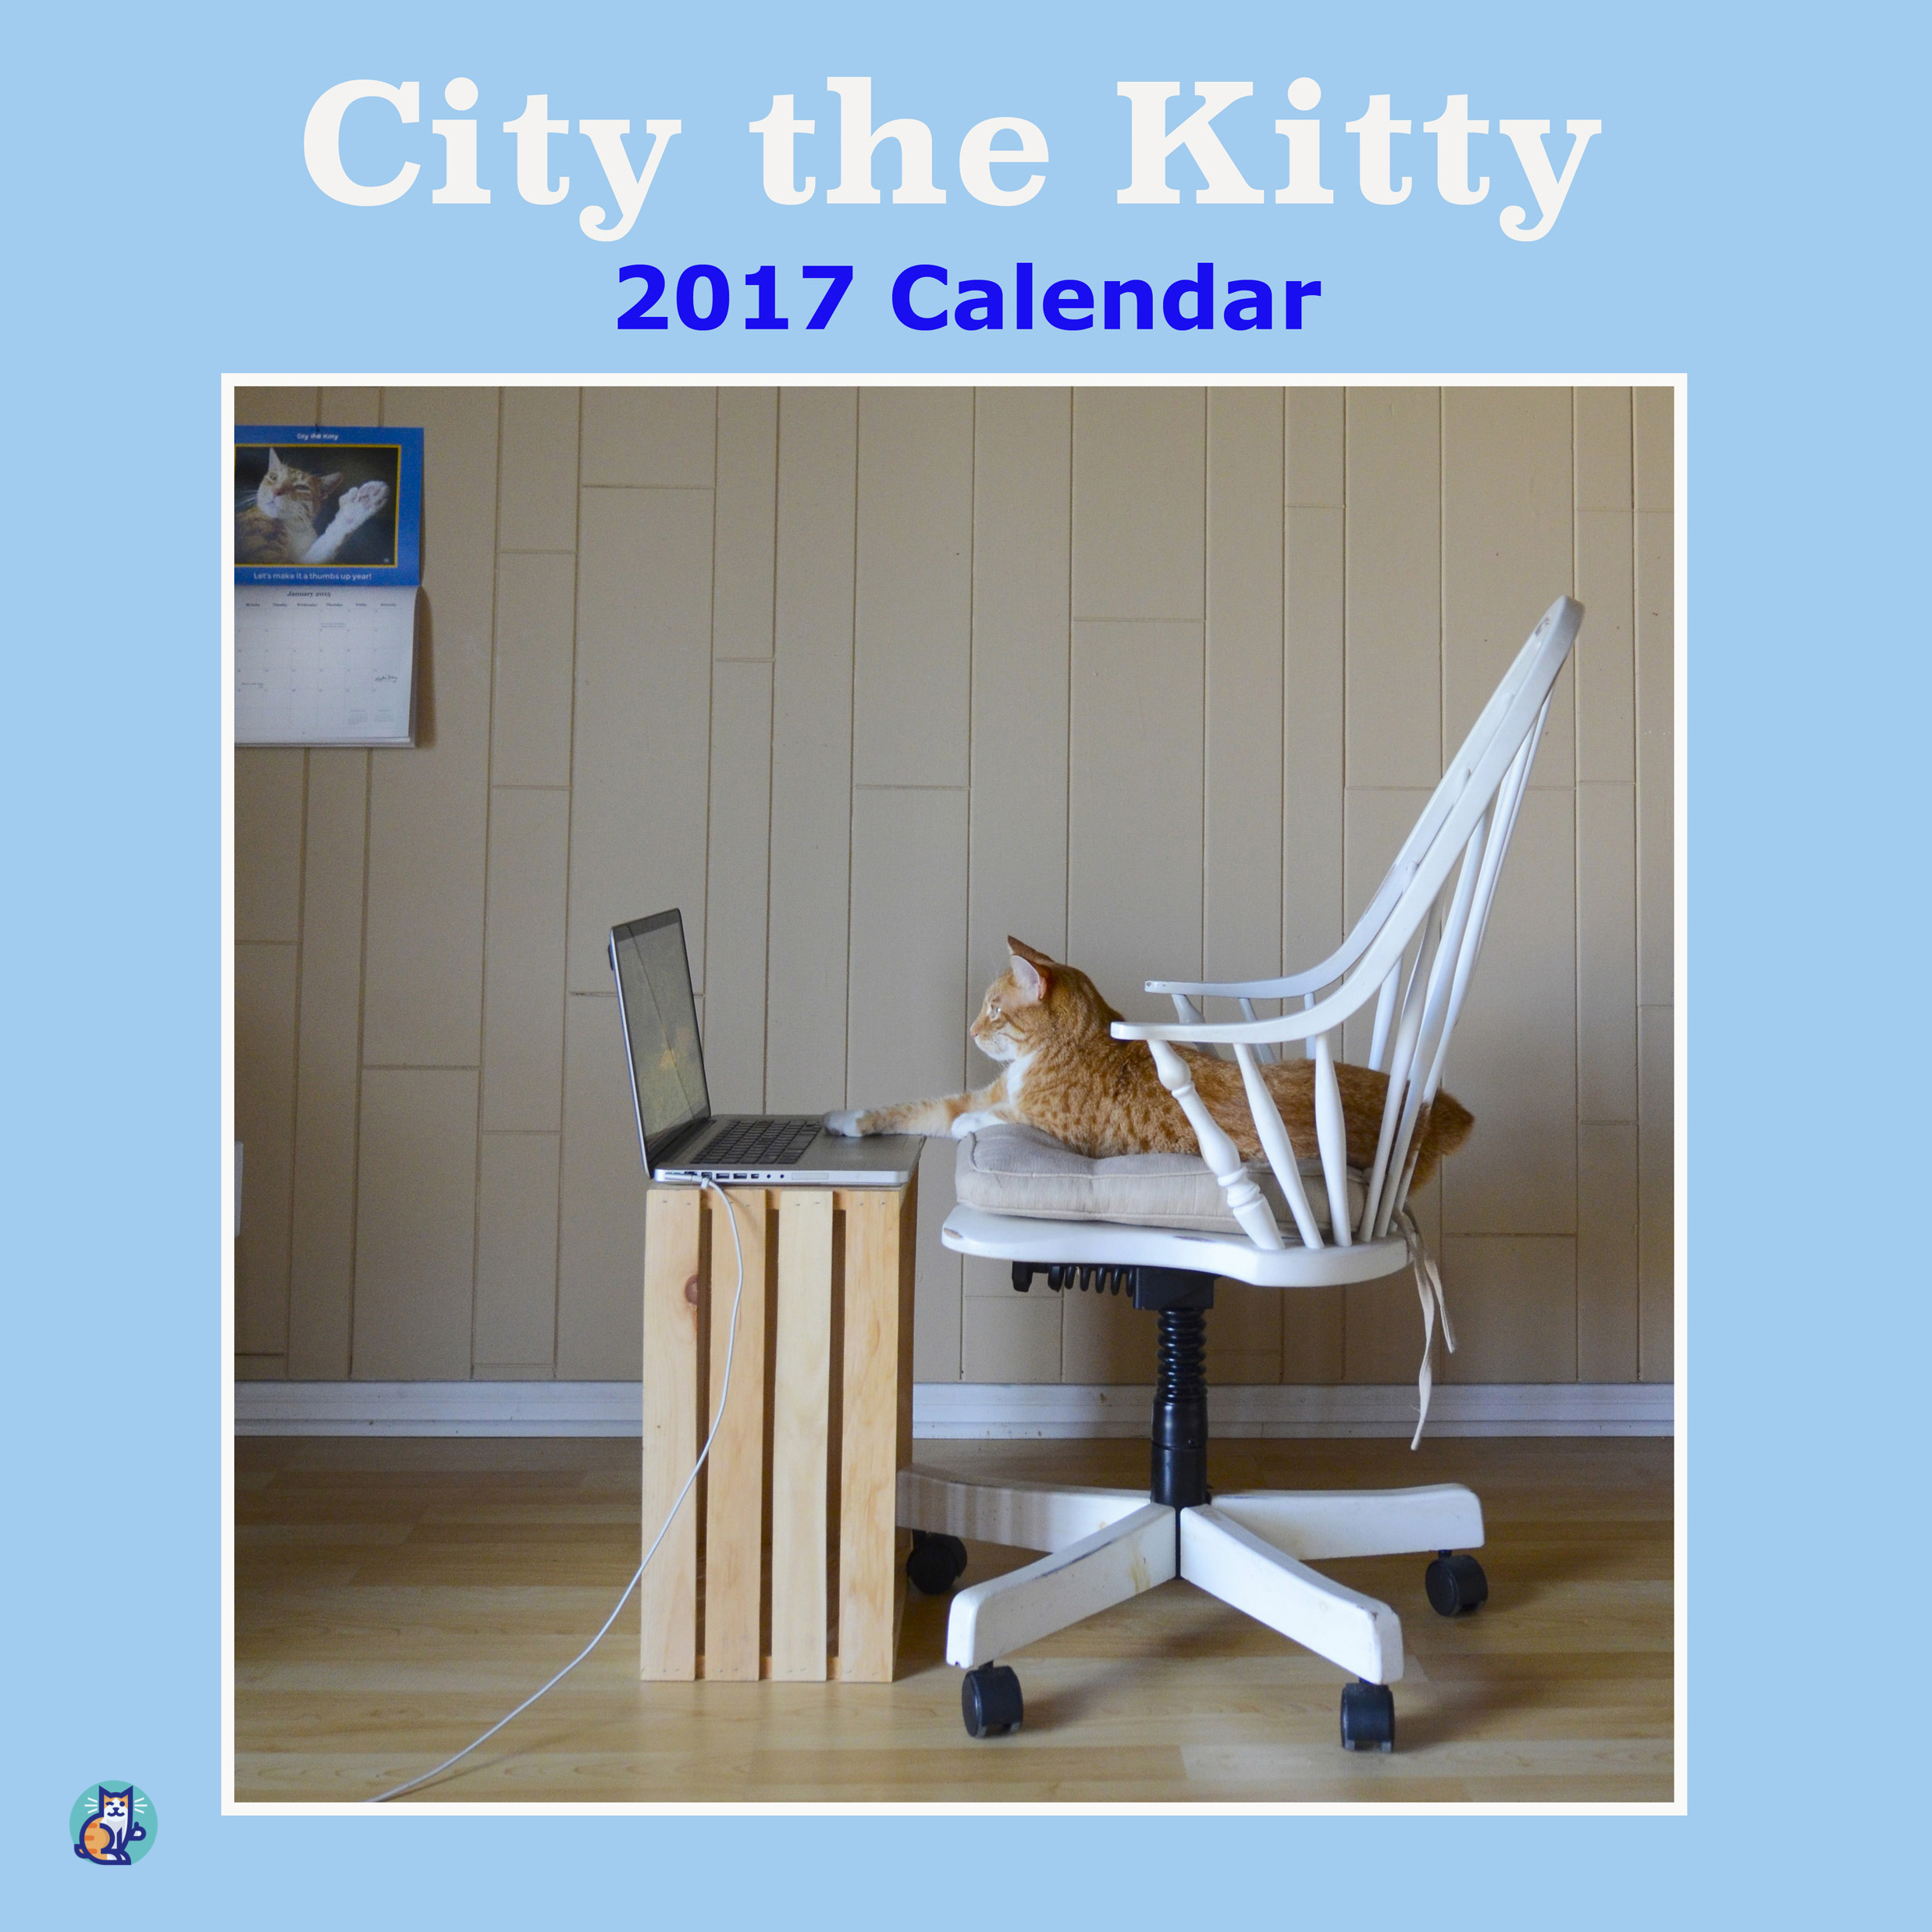 CITY THE KITTY PHOTO BOOK